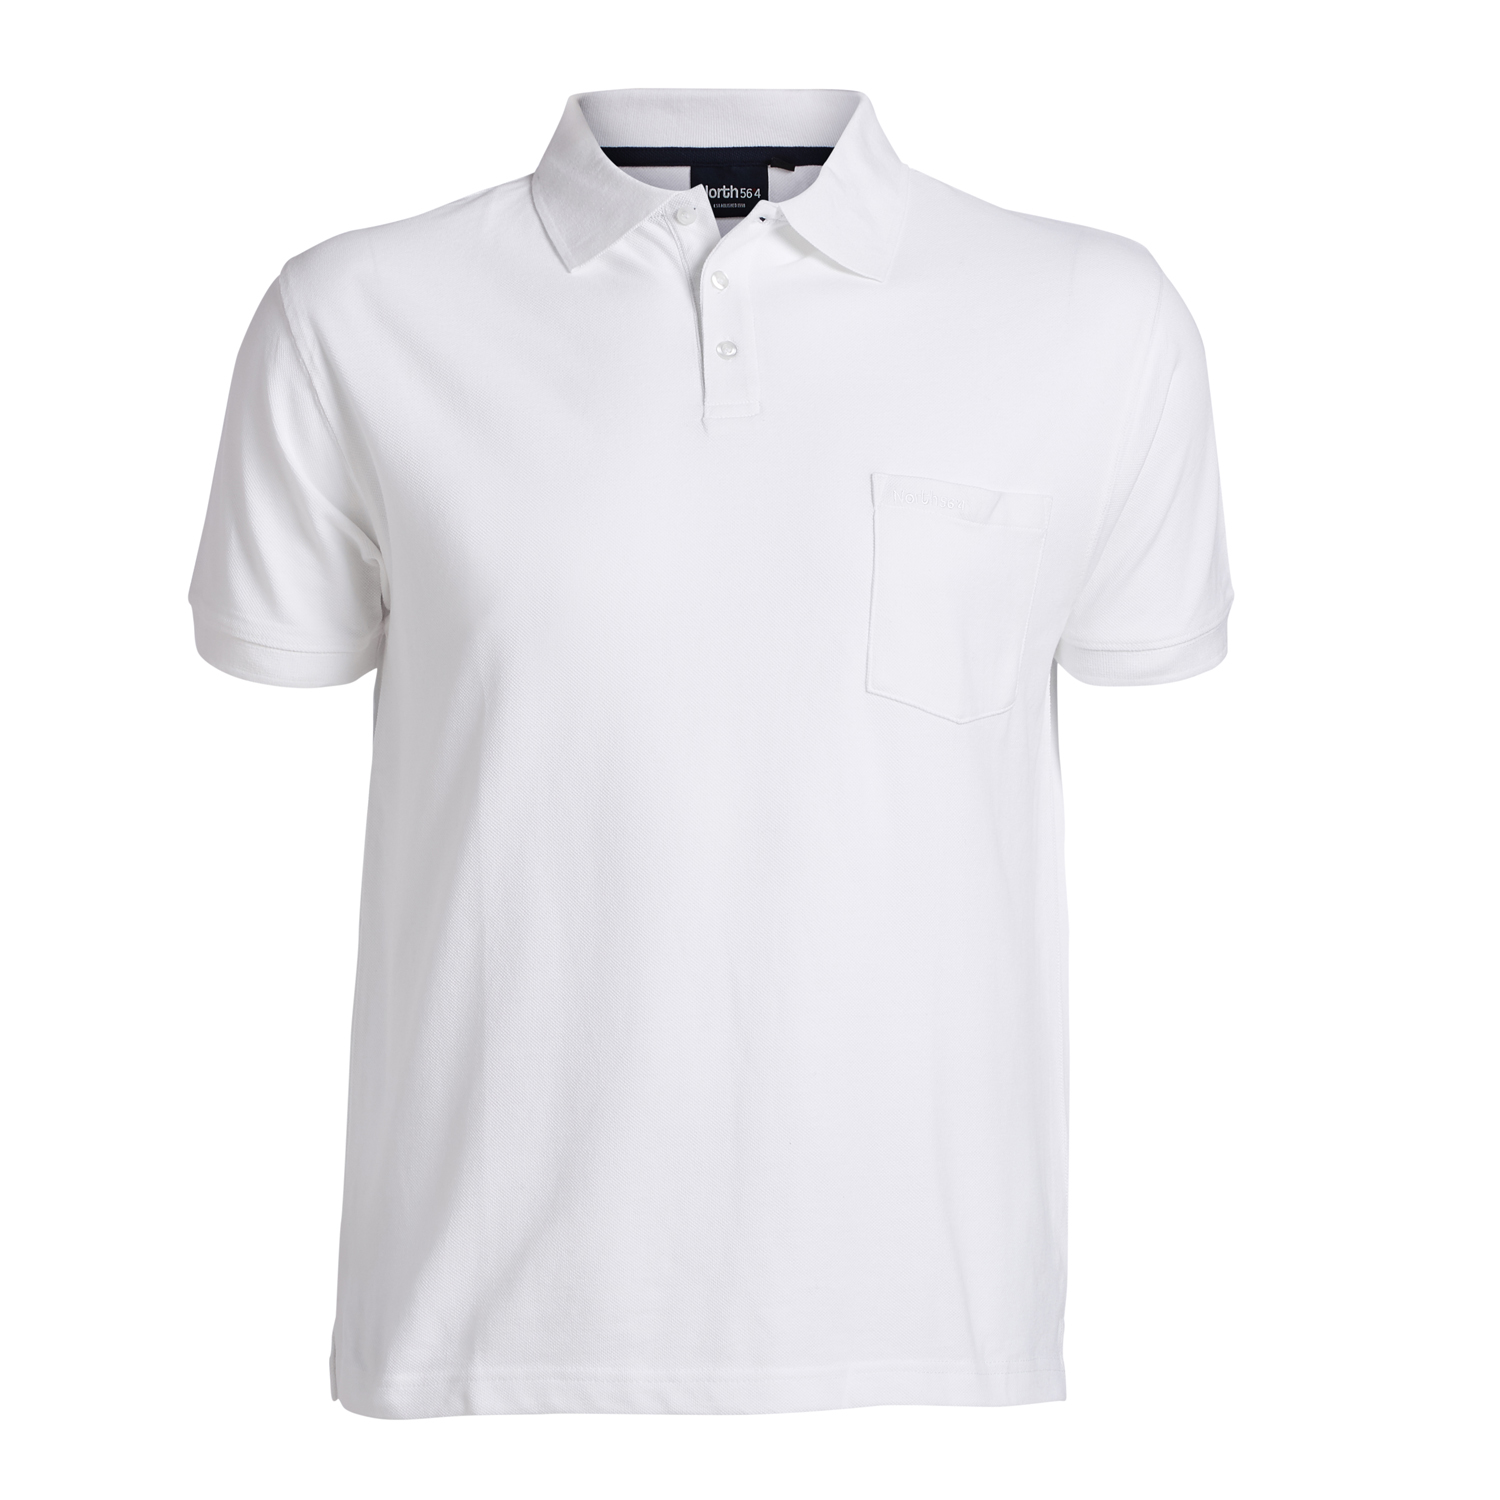 Detail Image to Pique poloshirt in white by Greyes/North 56°4 in extra large sizes up to 8XL